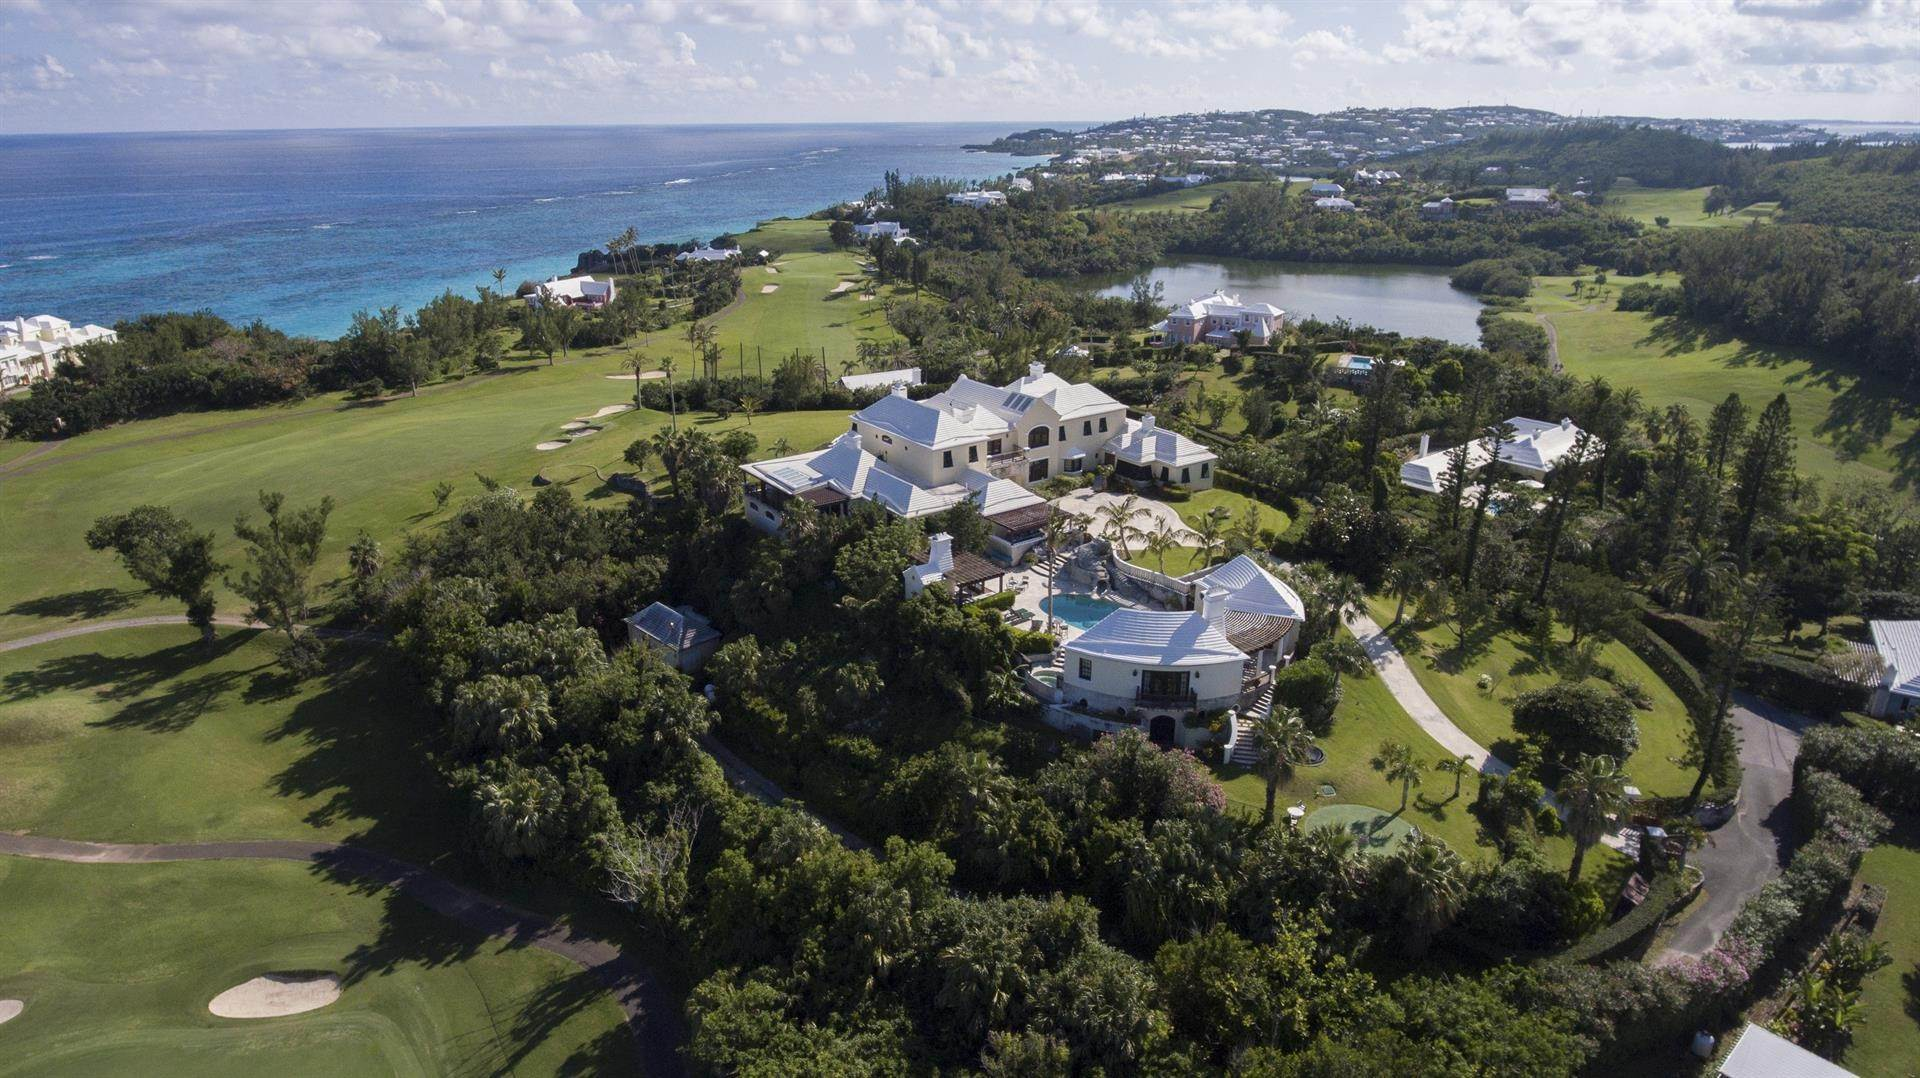 3. Địa ốc vì Bán tại Roughill In Tucker's Town Roughill In Tucker's Town, 6 Long Lane,Bermuda – Sinclair Realty